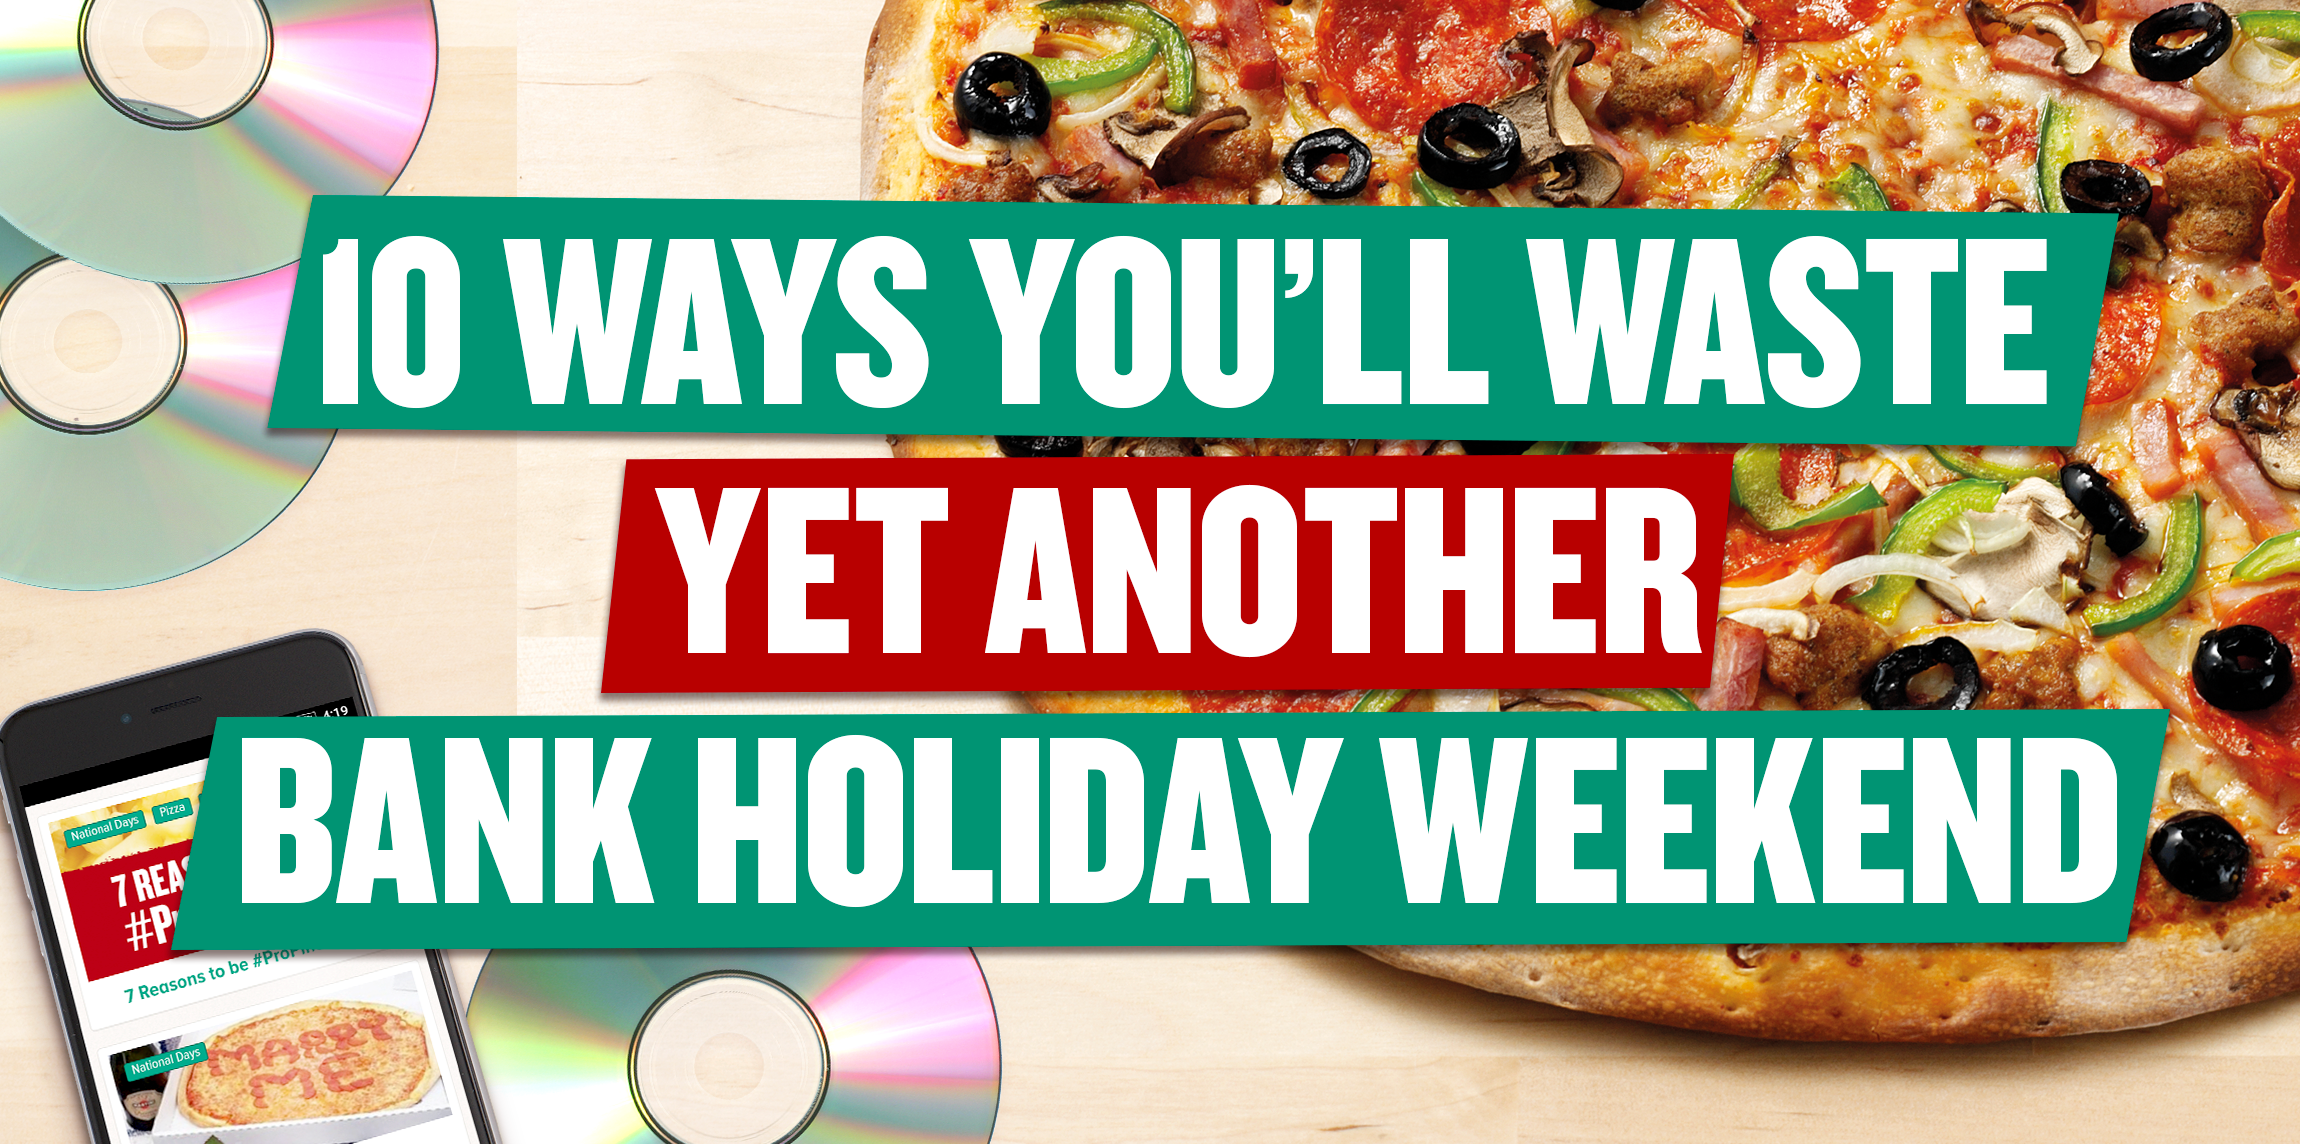 10 Ways You'll Waste Yet Another Bank Holiday Weekend